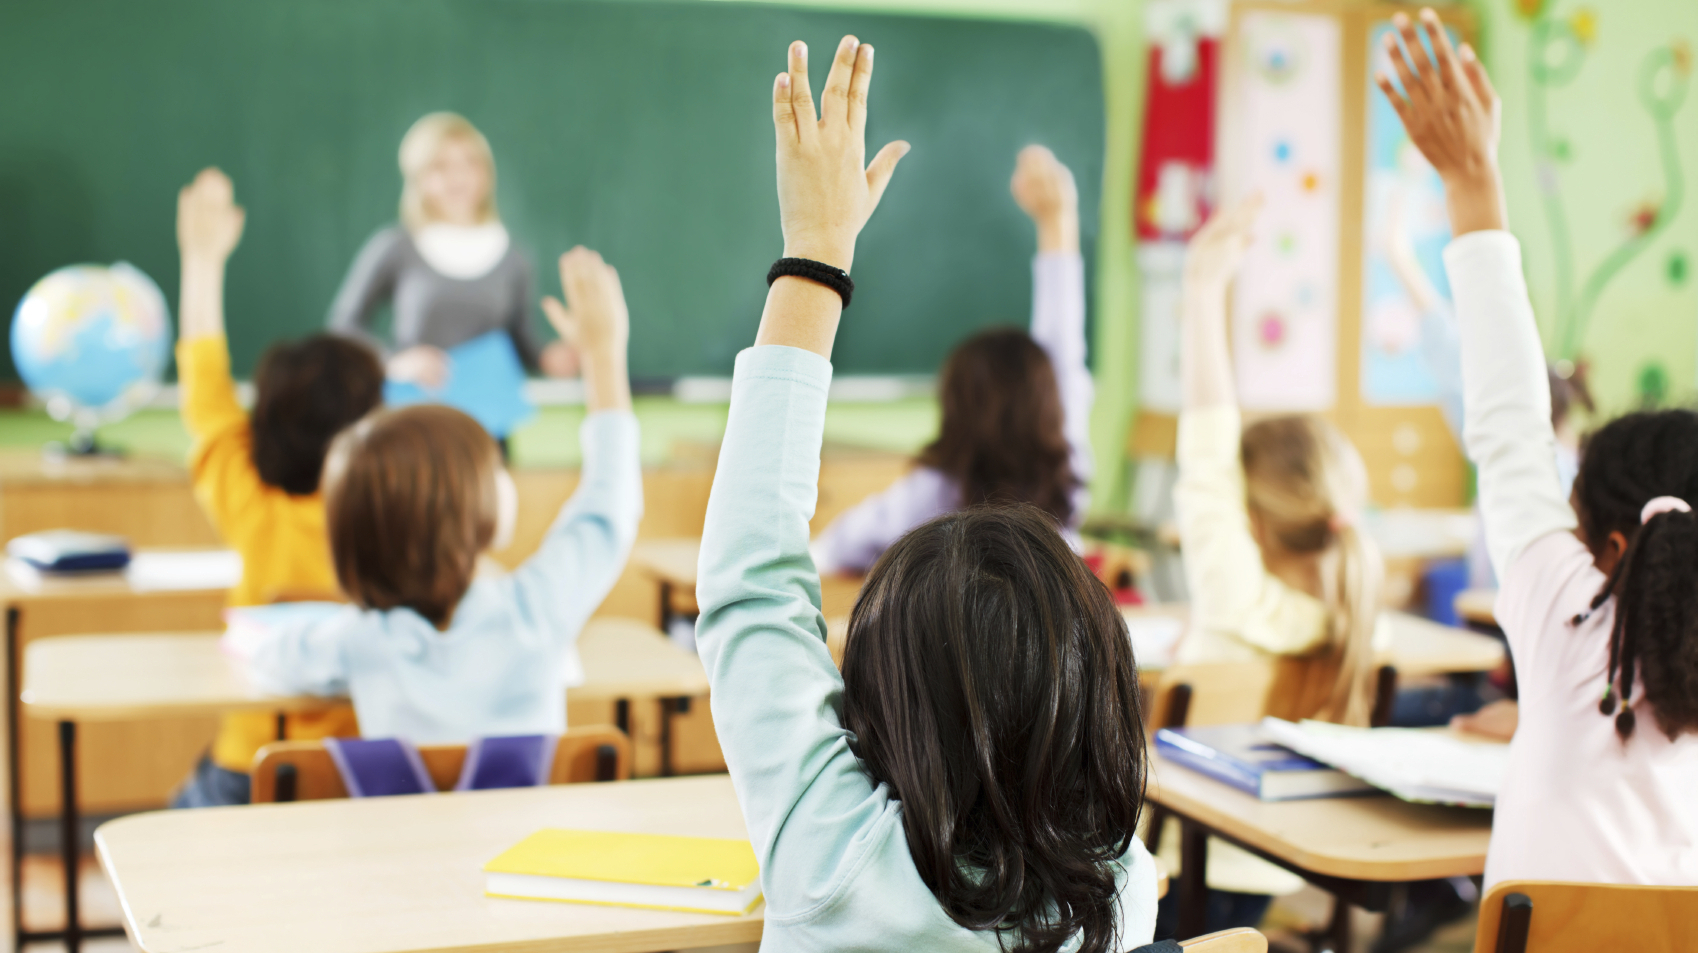 a comparison of public education and home schooling in childrens education